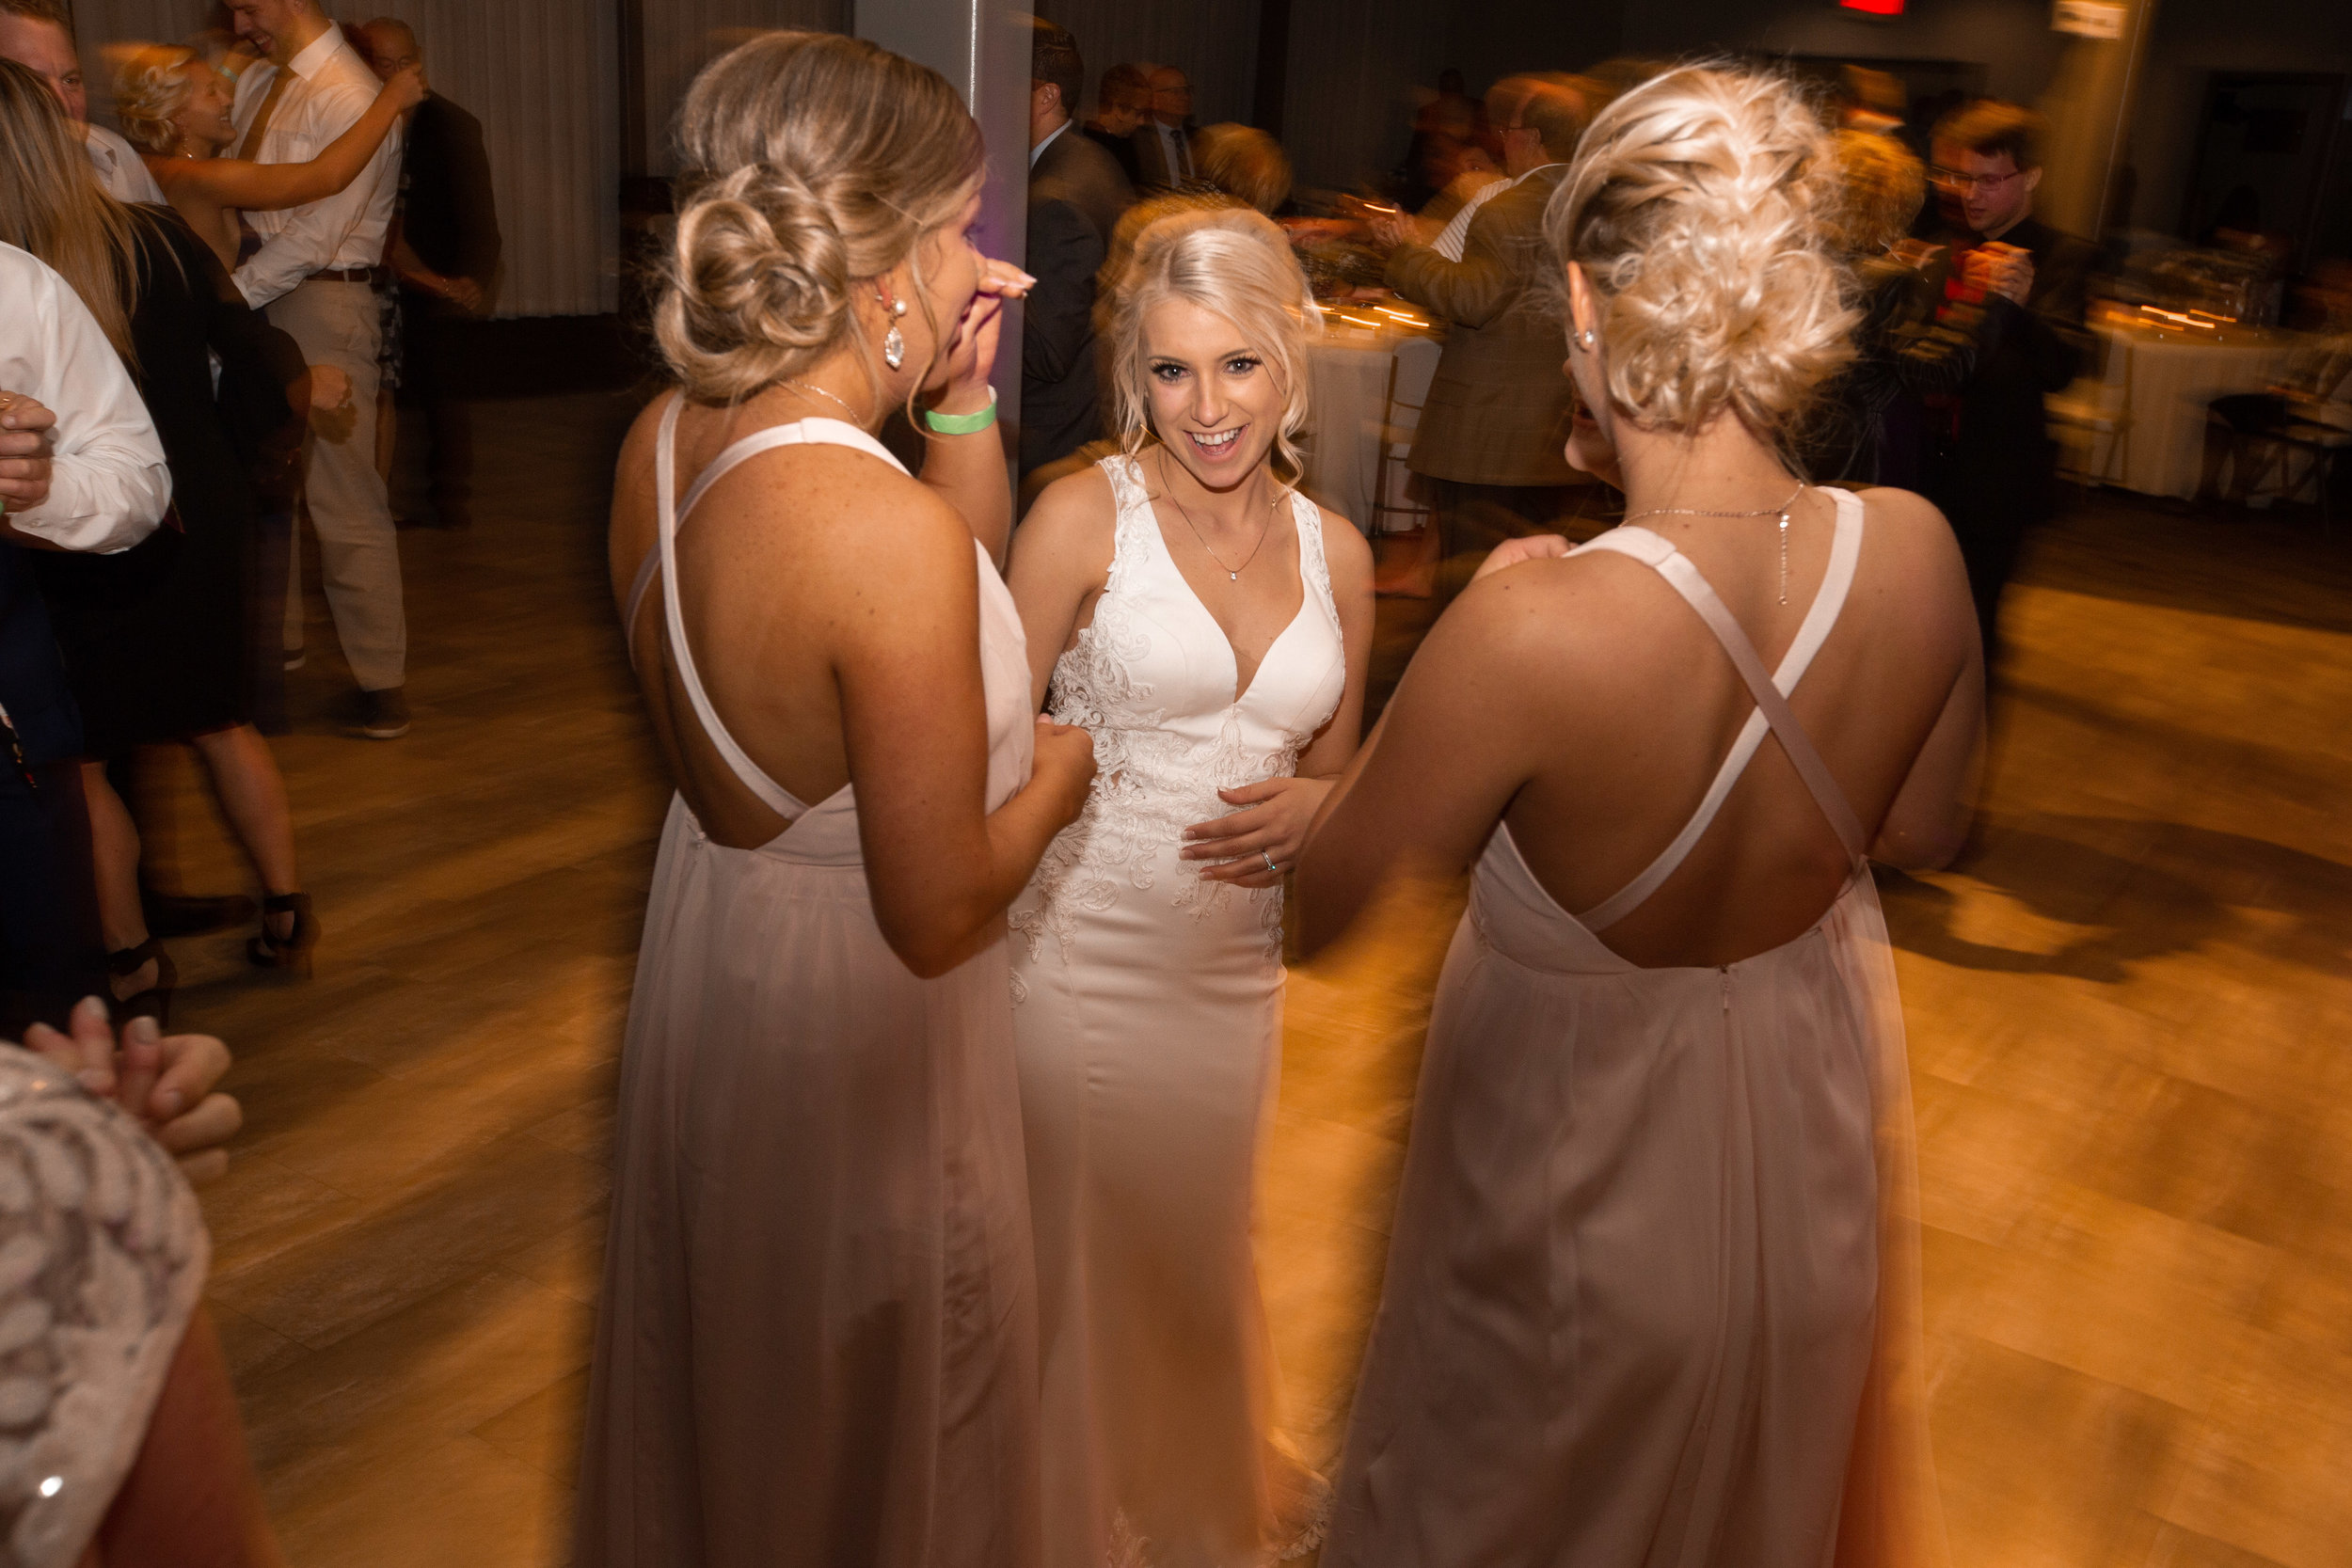 C_Wedding_Tronick, Megan & Andrew_09.22.18-917.JPG